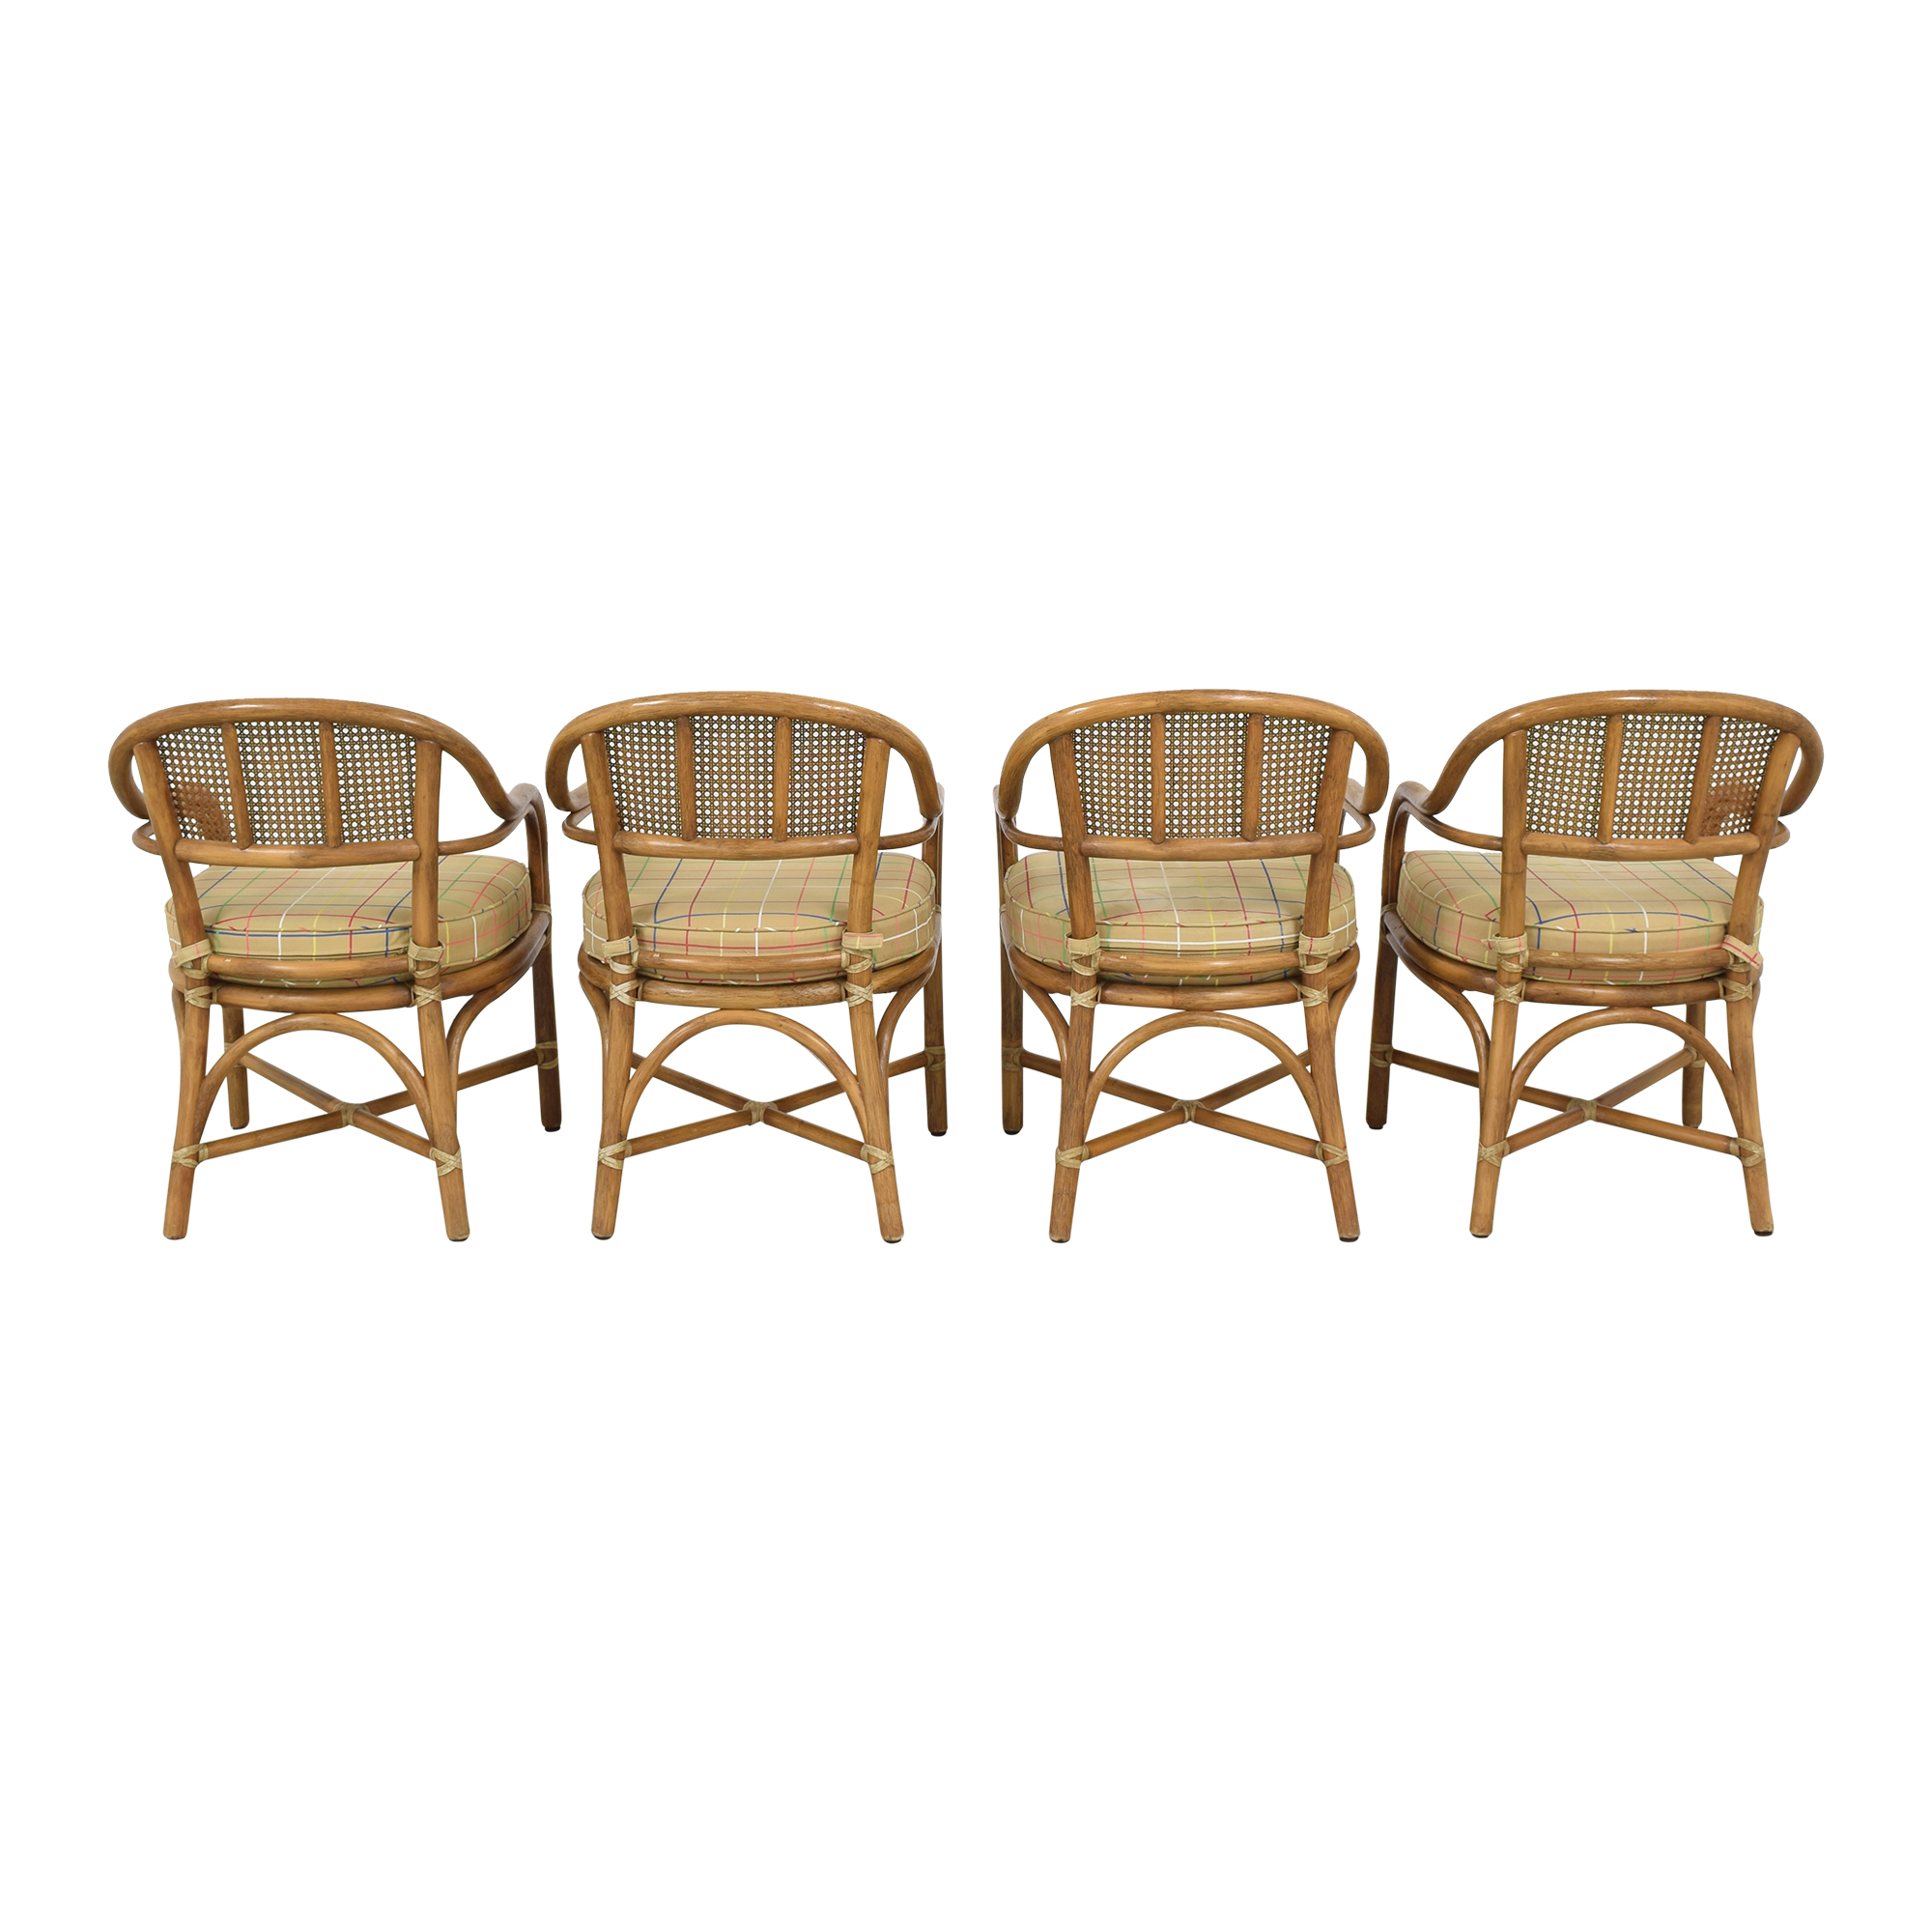 McGuire McGuire Wicker Dining Chairs coupon